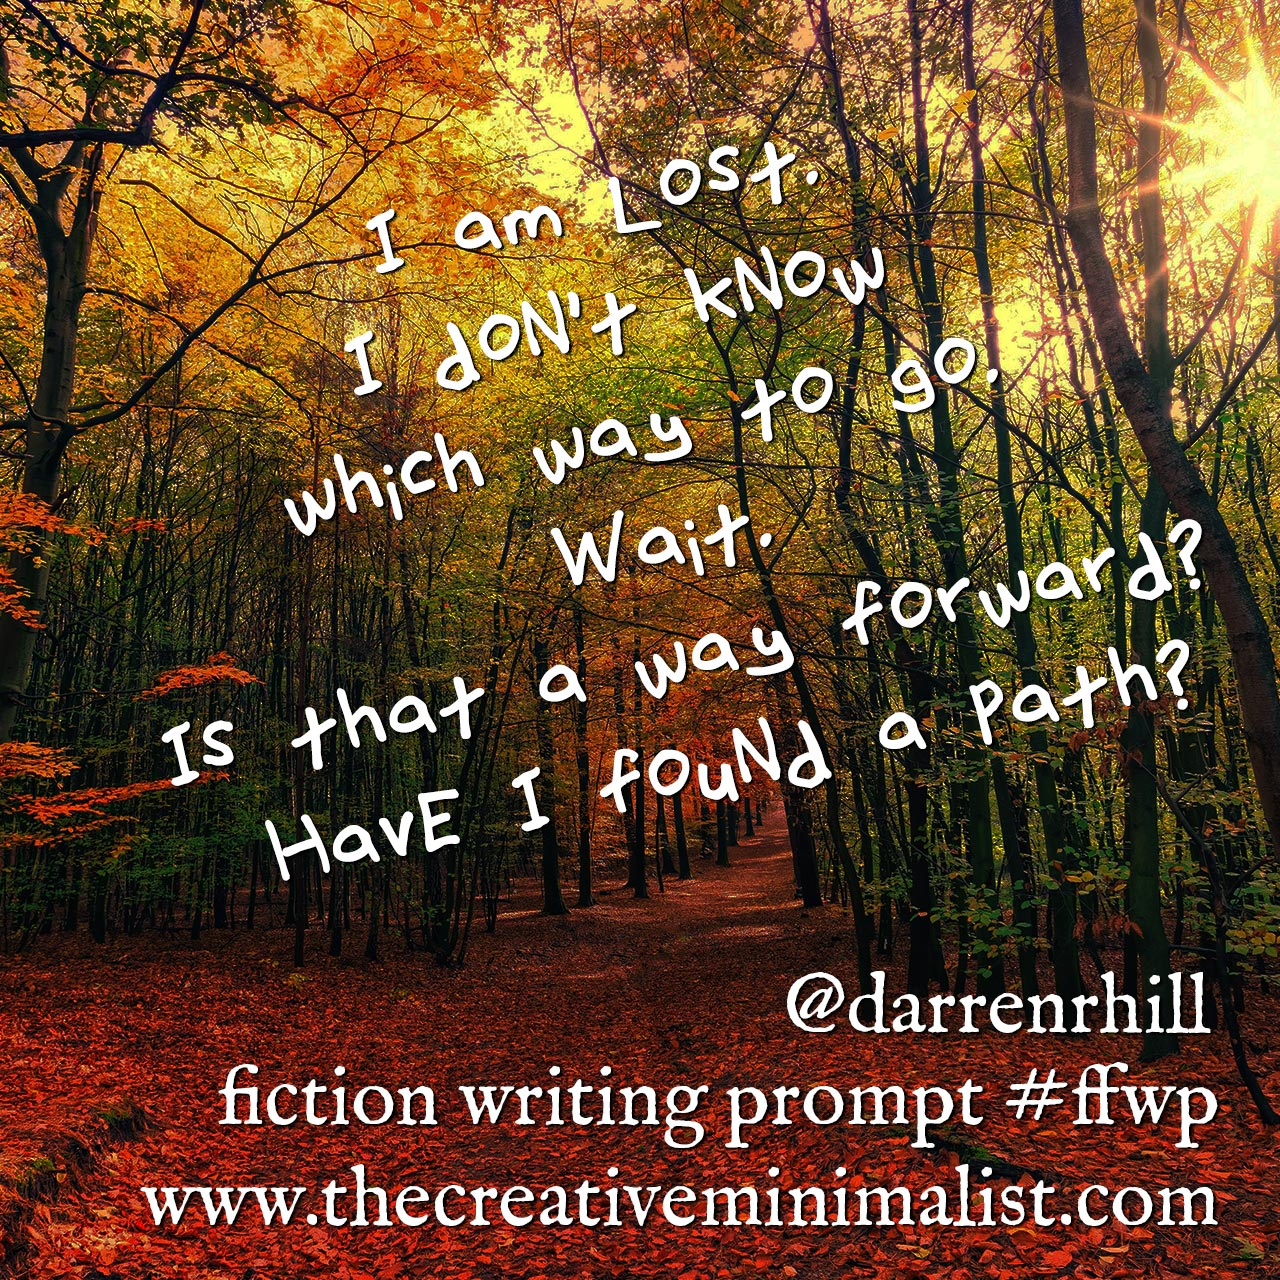 I am lost. I don't know which way to go. Wait. Is that a way forward? Have I found a path? Friday Fiction Writing Prompt the creative minimalist